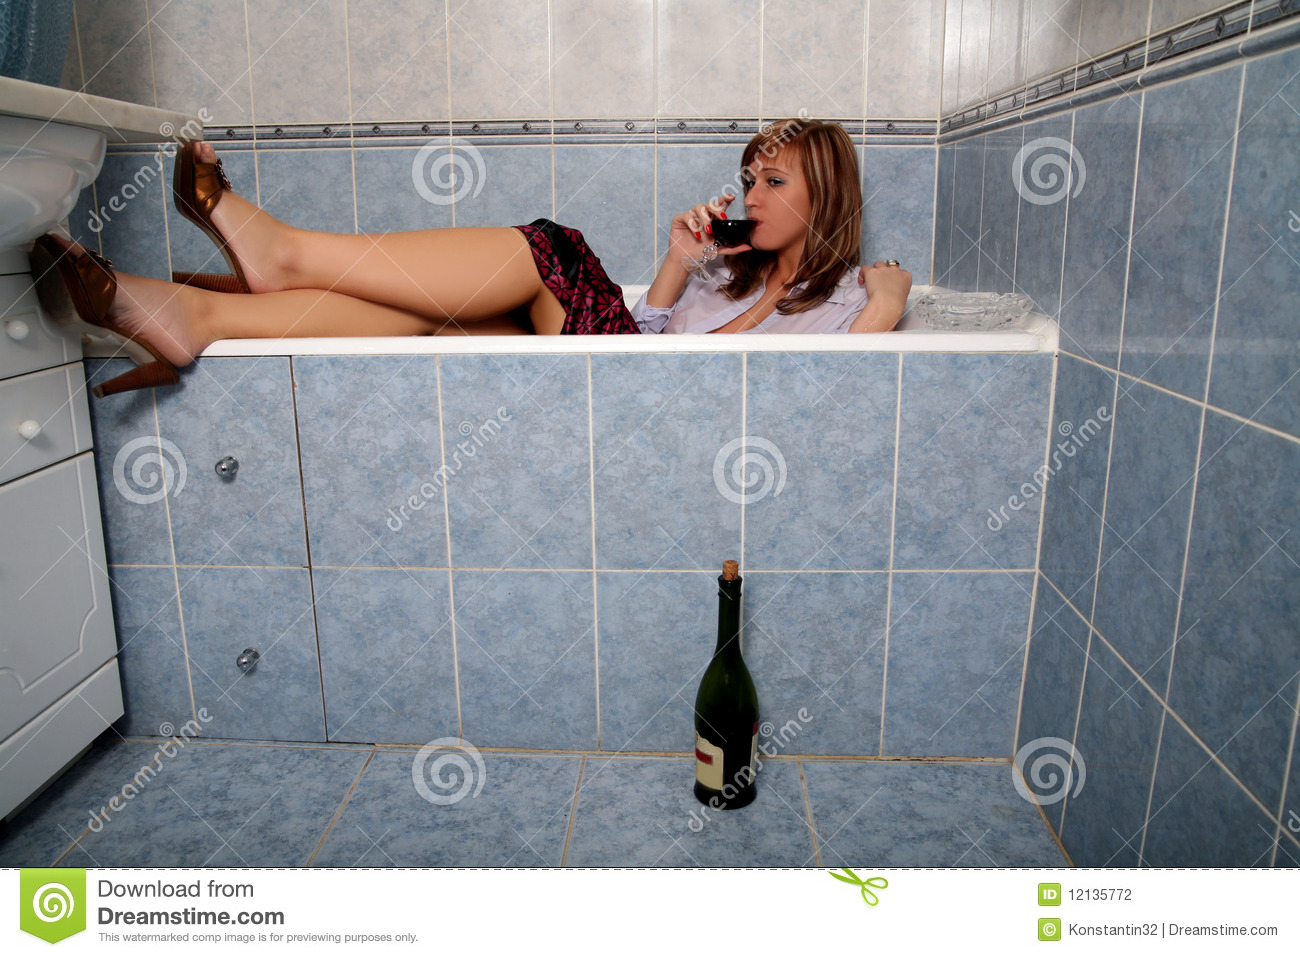 Photos Of Girl Without Any Cloth In Bathroom - Blonde in bathroom in clothes with wine stock photography